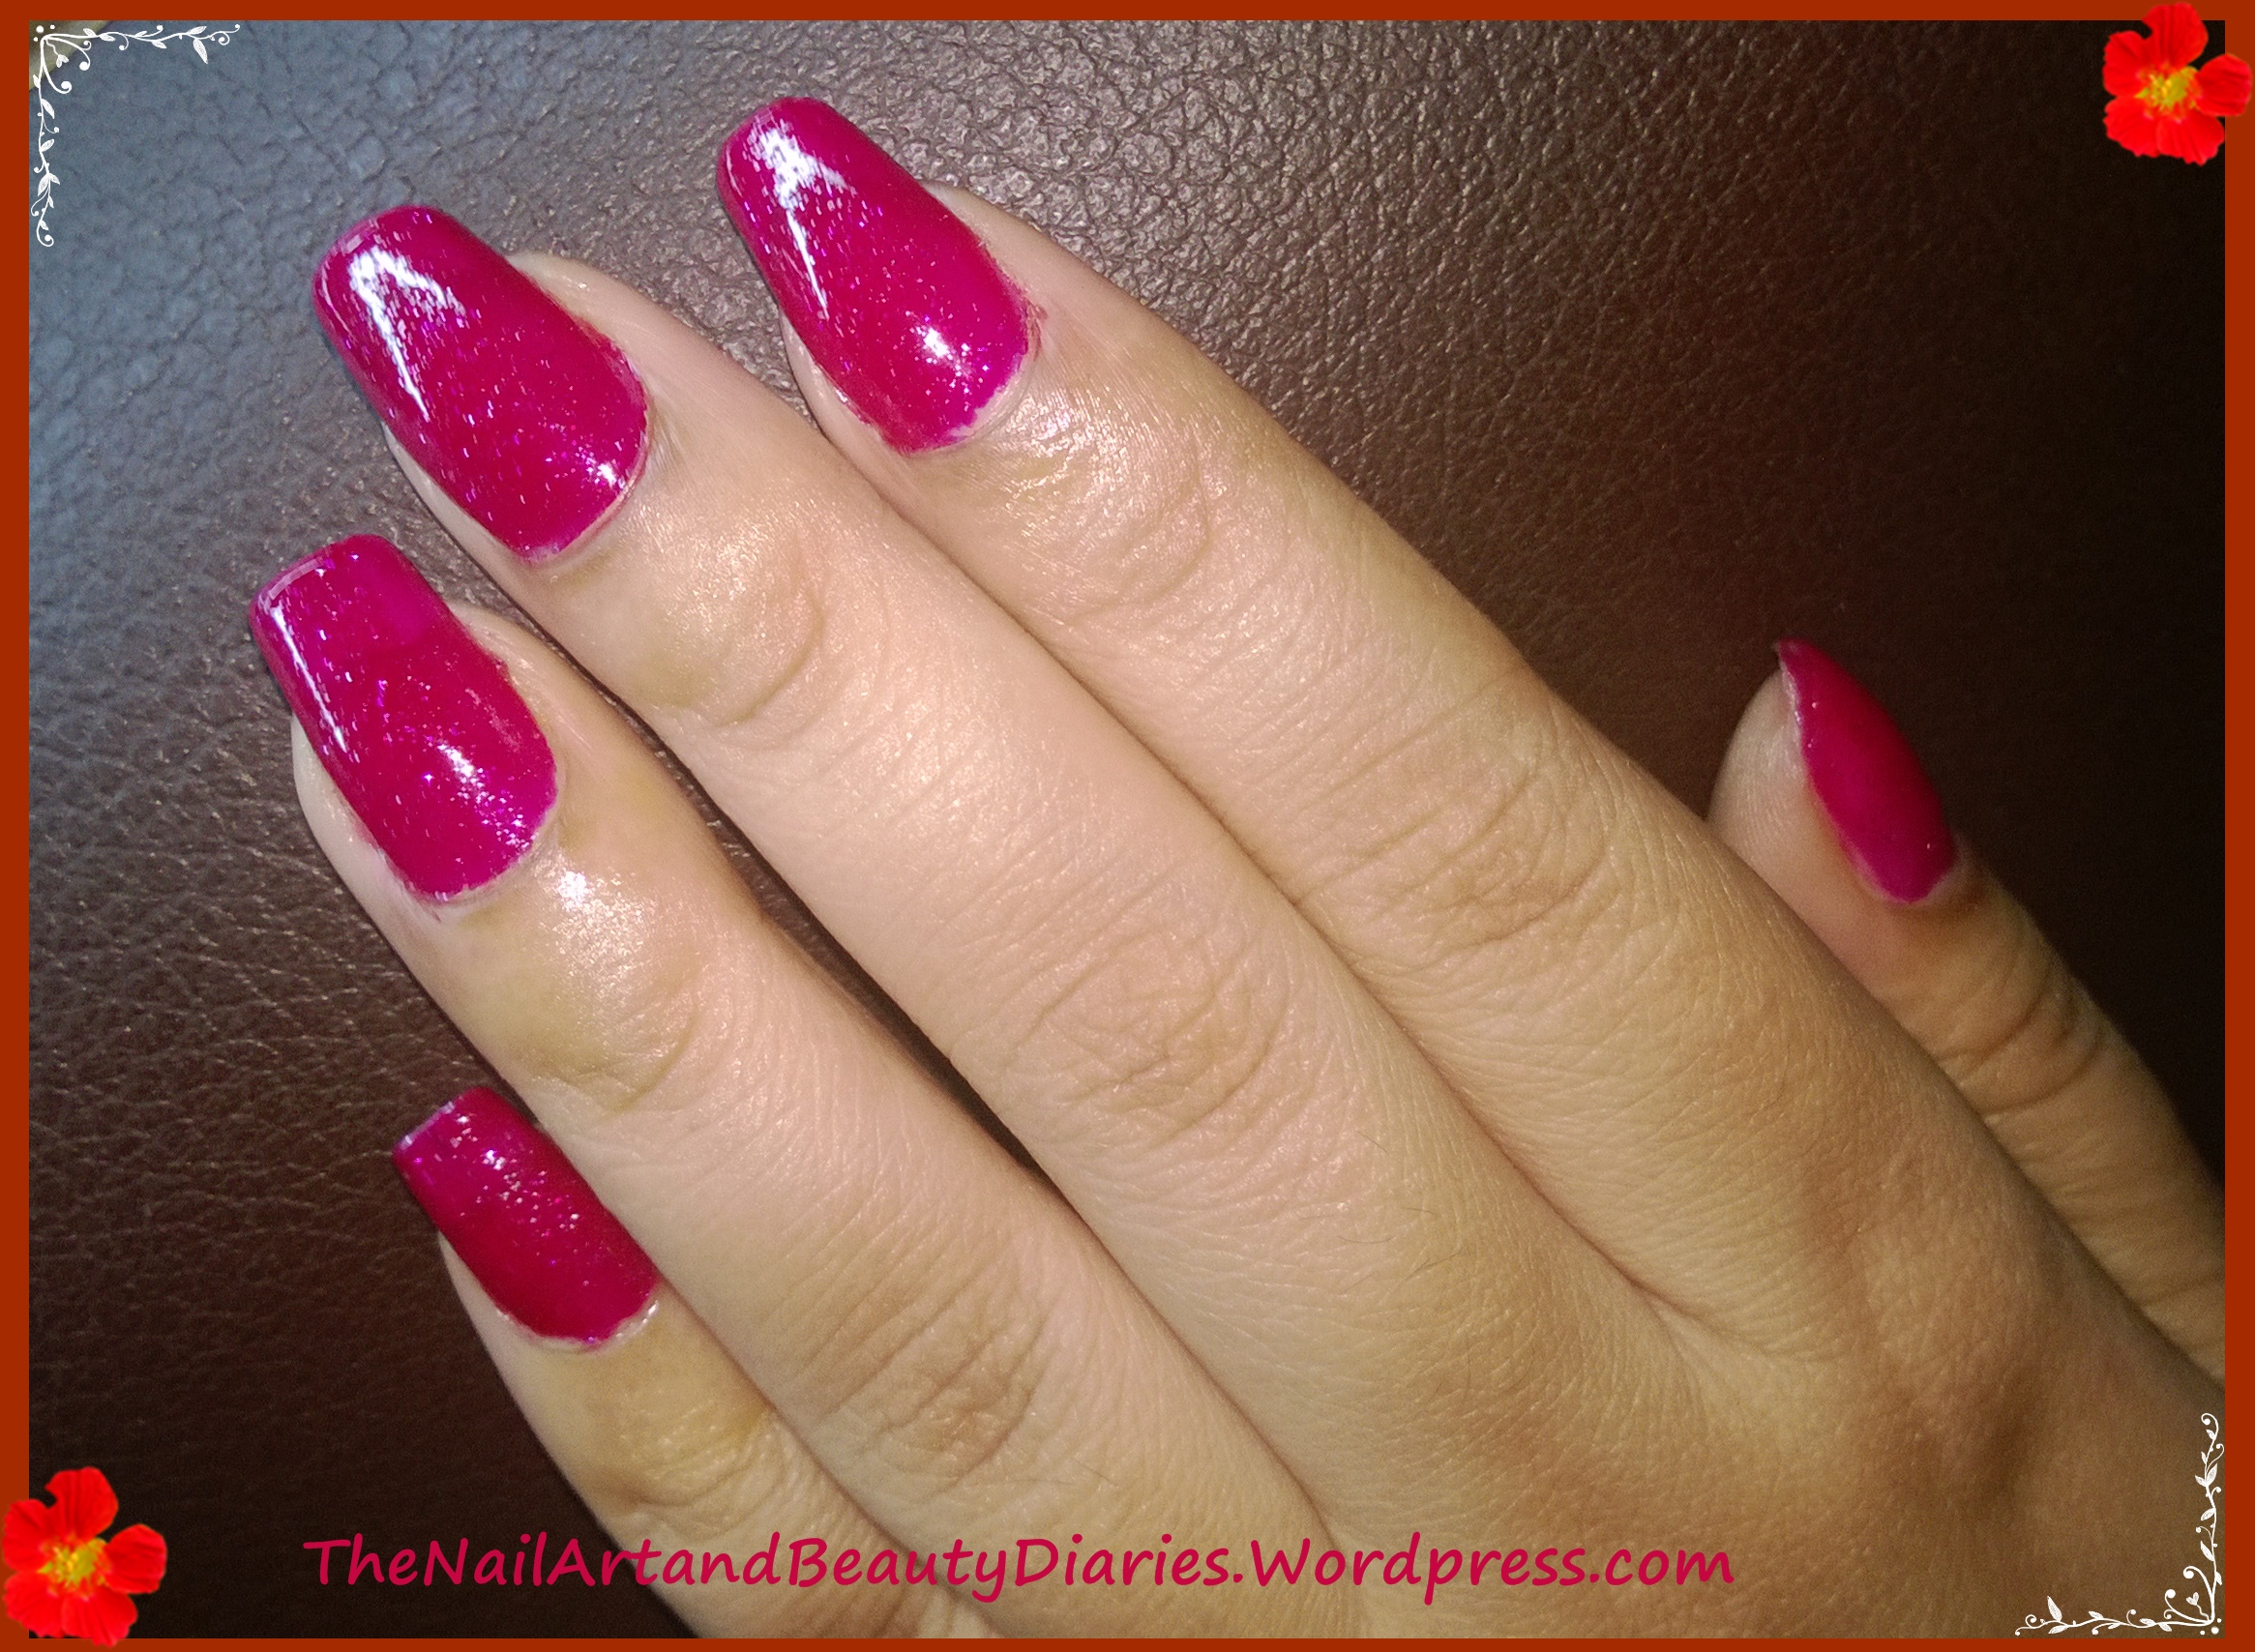 Maybelline color show velvet wine nail polish review the nail maybelline color show velvet wine nail polish review prinsesfo Choice Image